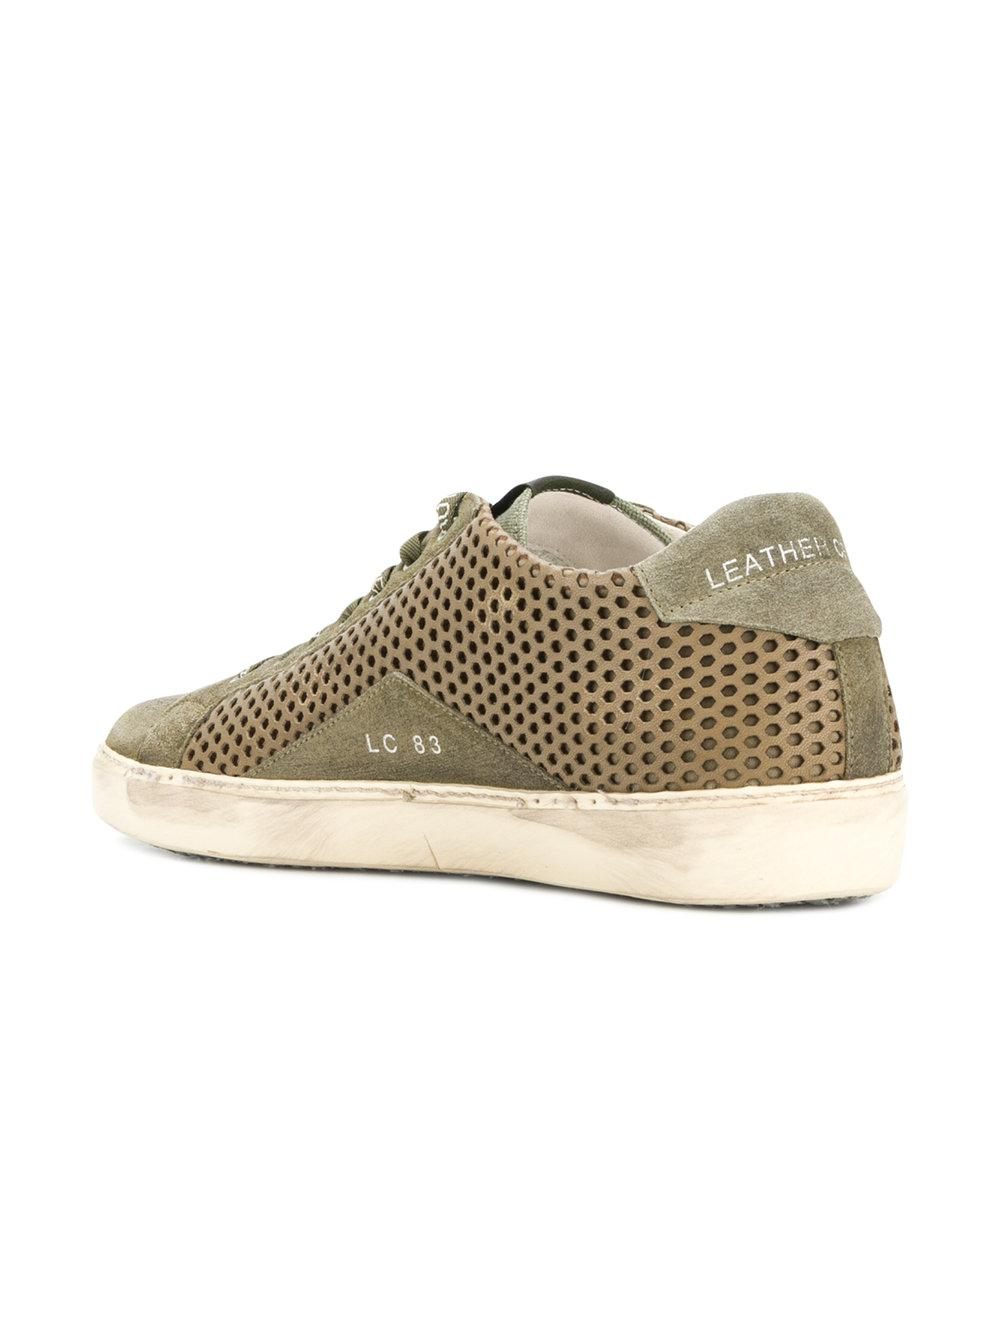 Choice Cheap Price Discount View perforated lace-up sneakers - Green Leather Crown Choice Sale Online Buy Cheap 2018 Newest Sale Limited Edition kJM414lm92